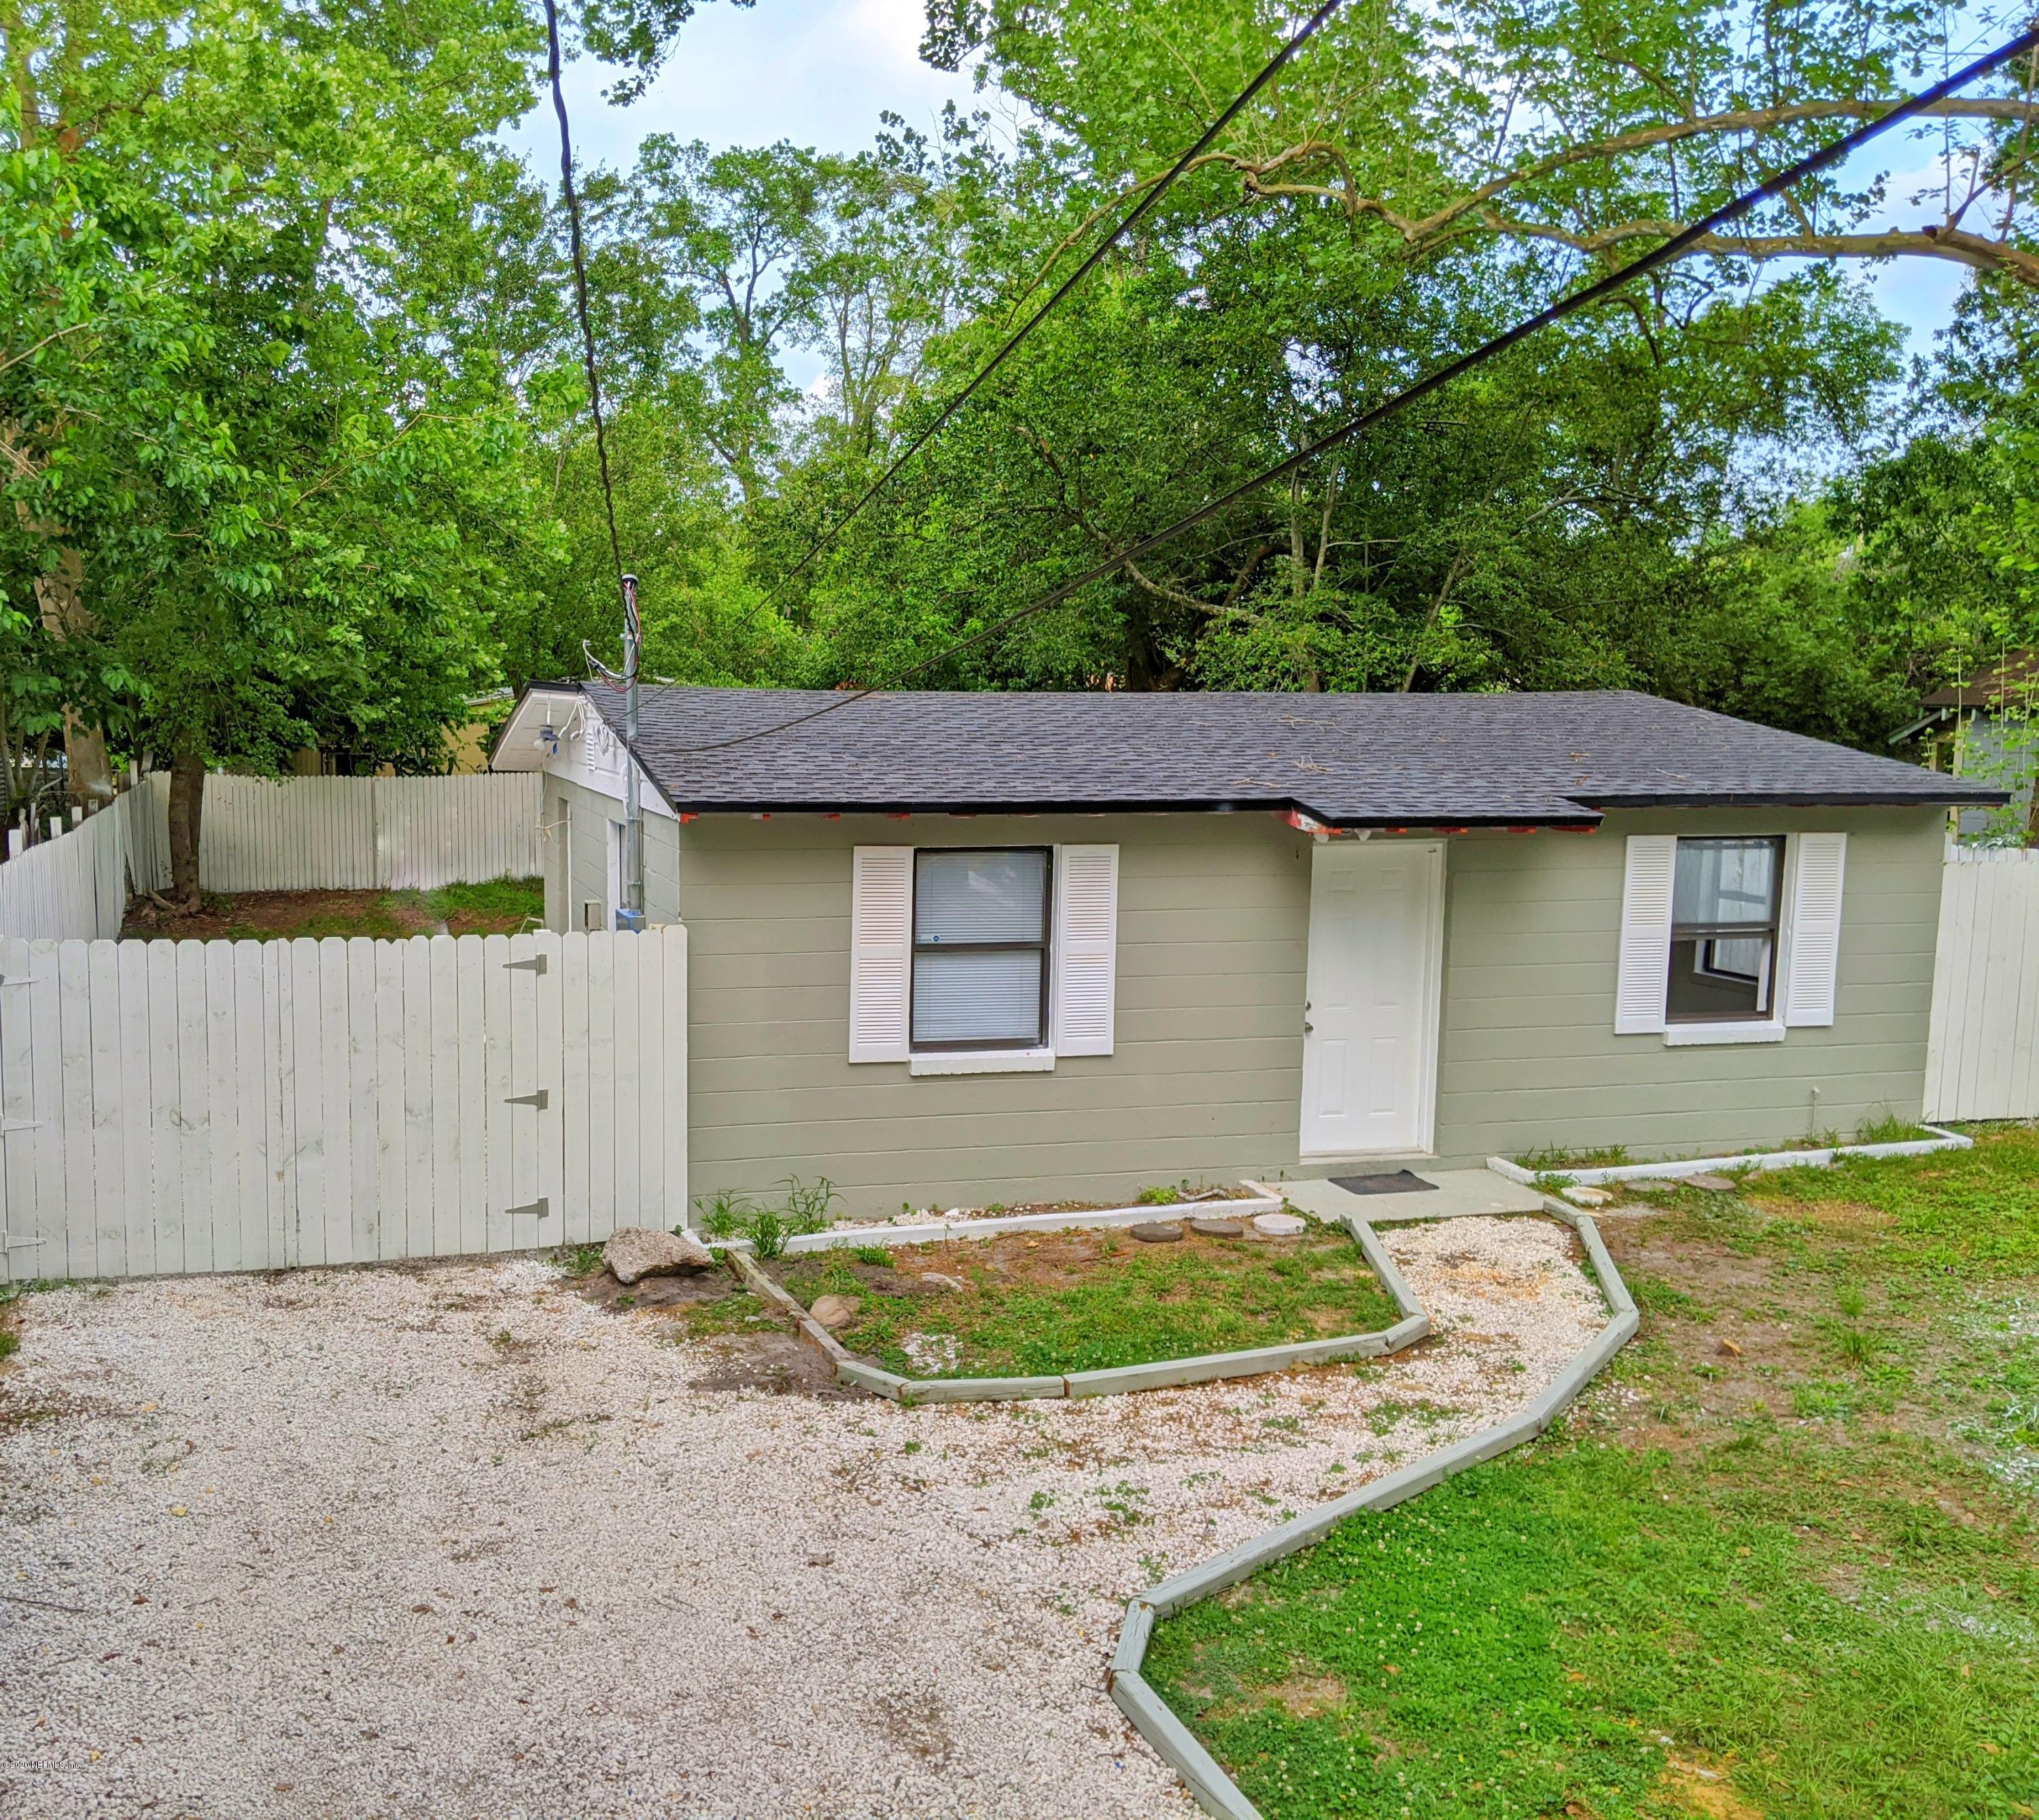 9261 3RD, JACKSONVILLE, FLORIDA 32208, 2 Bedrooms Bedrooms, ,1 BathroomBathrooms,Residential,For sale,3RD,1049353